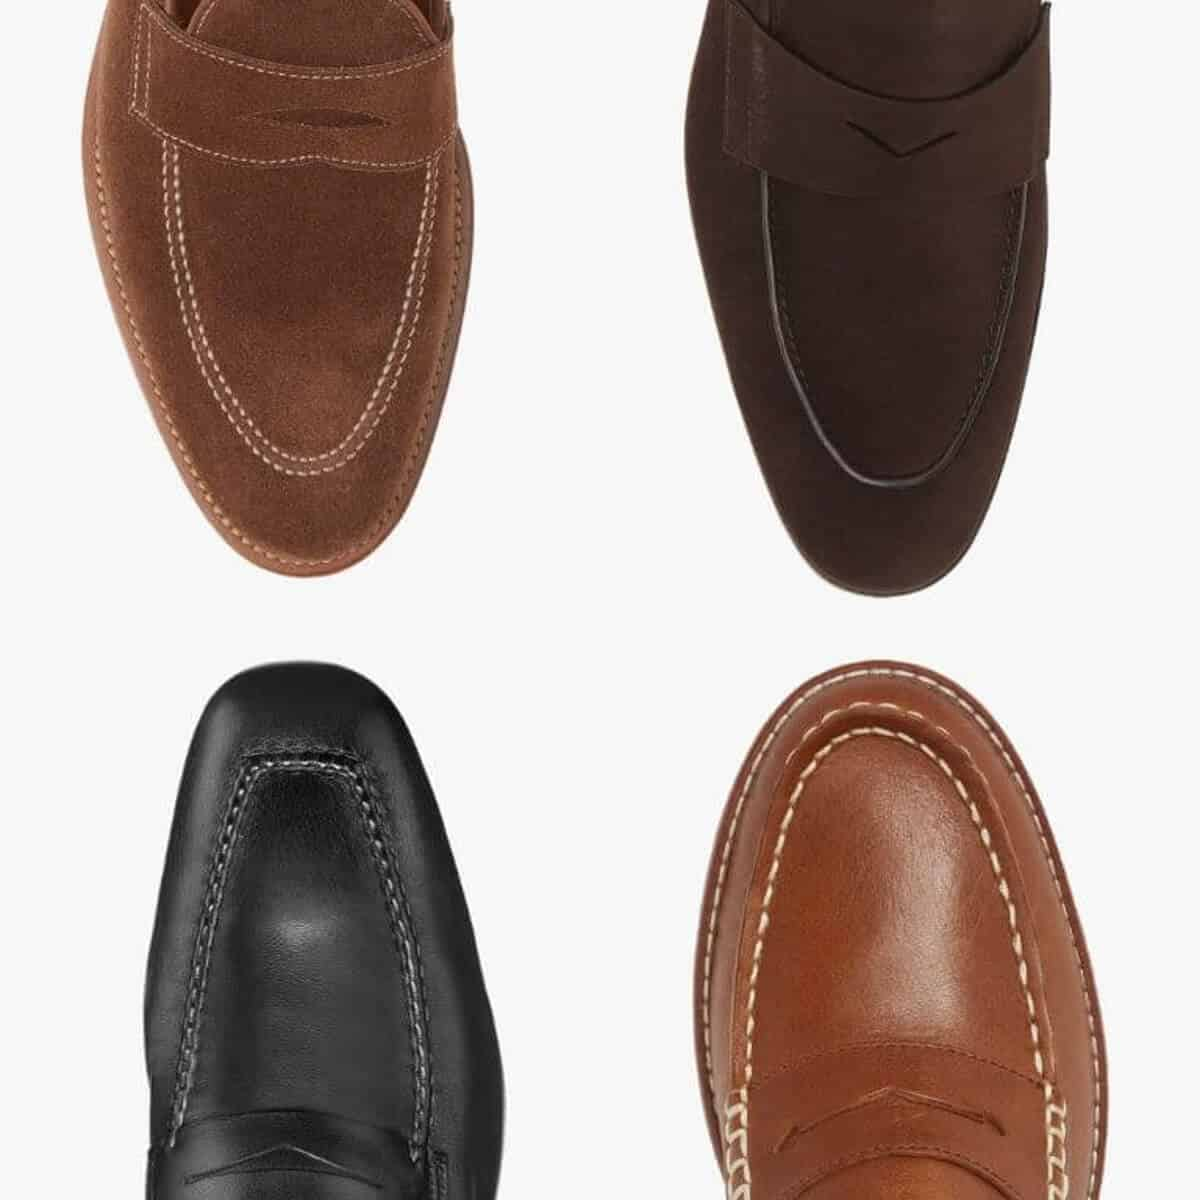 Four different penny loafers.